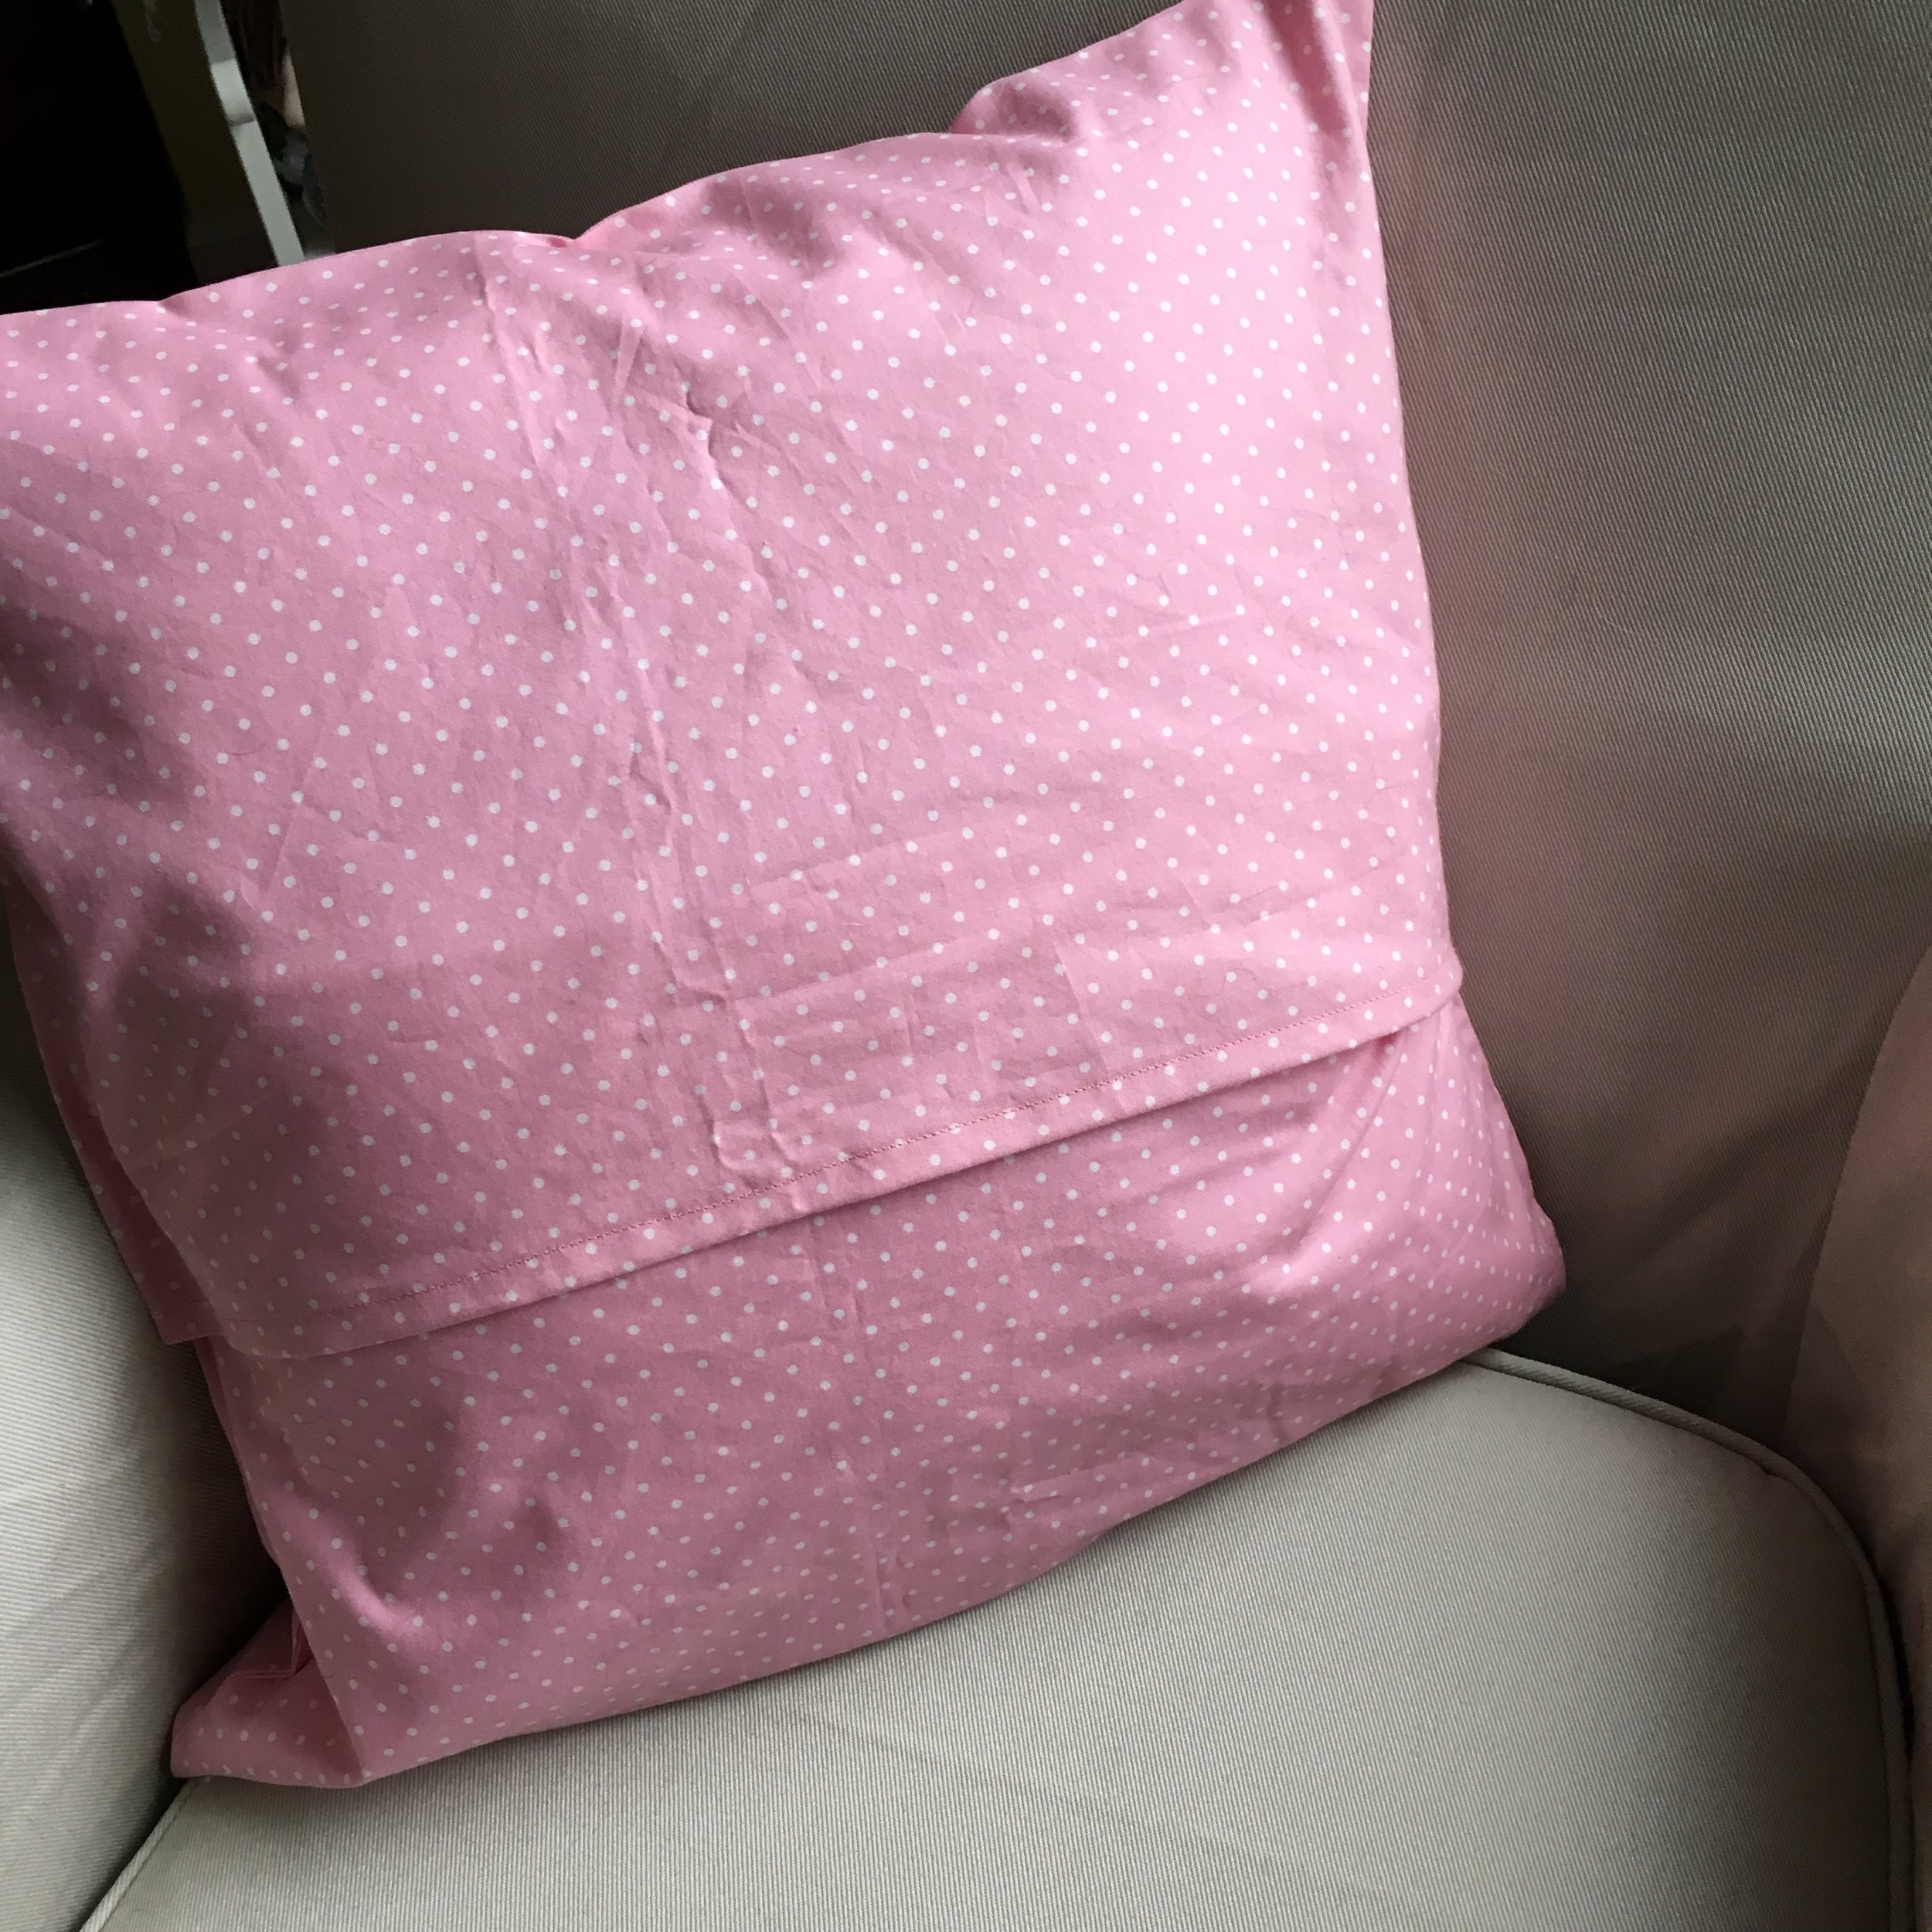 Back of the pillow with an envelope closure